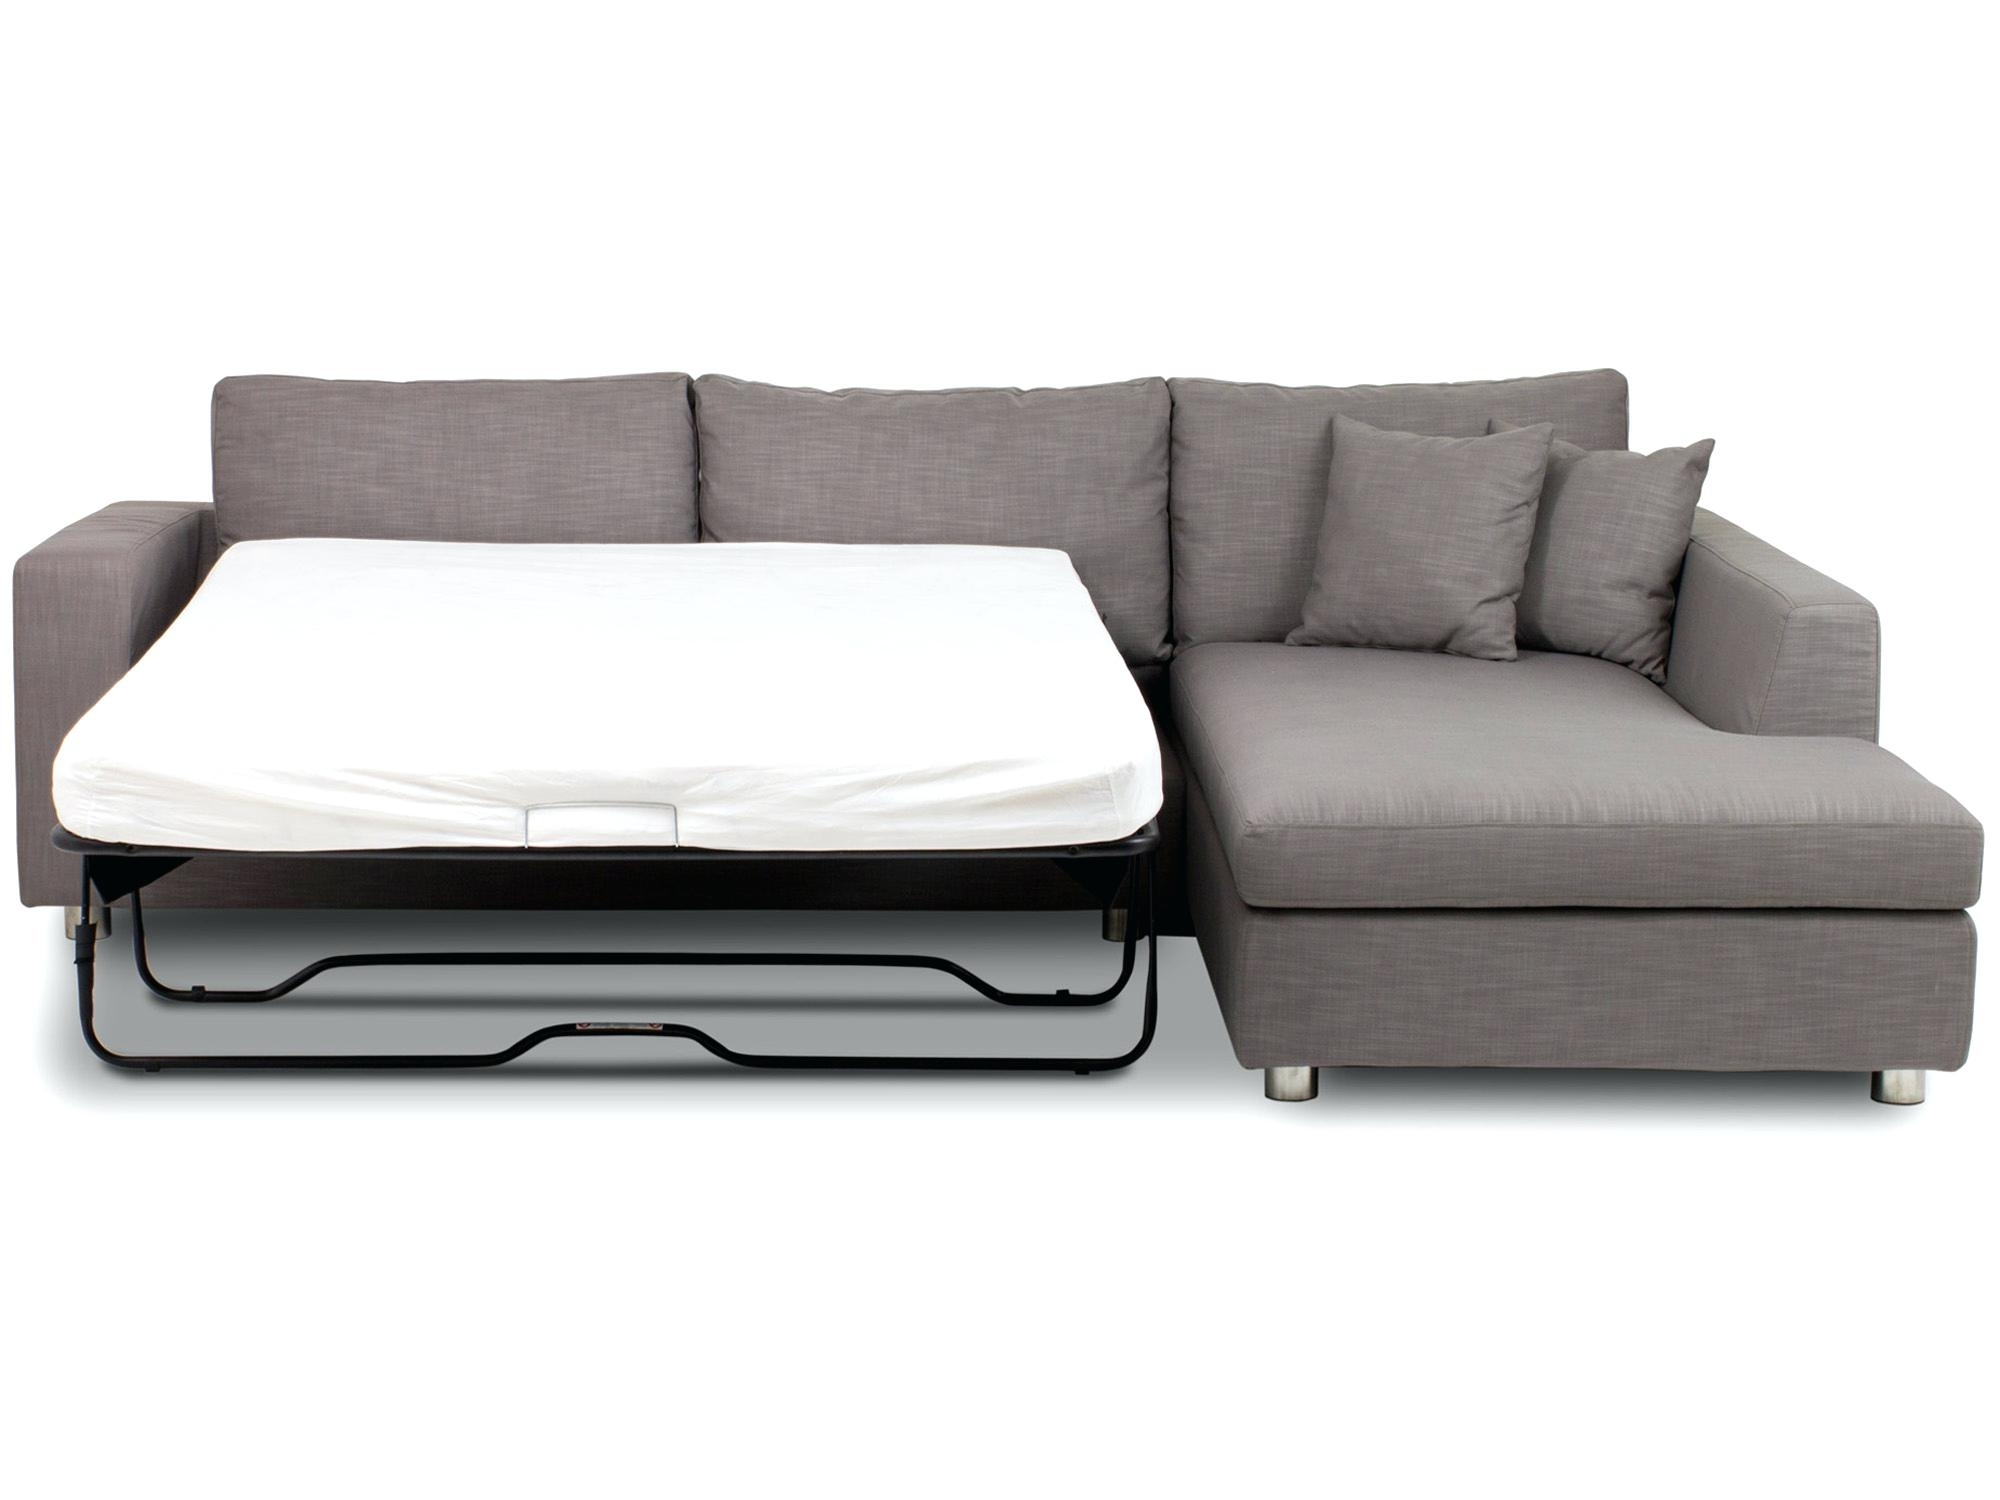 Well Known Chaise Lounge Beds – I4 Mariani Remote Controlled Up Down Lounge Regarding Sofa Beds With Chaise Lounge (View 5 of 15)